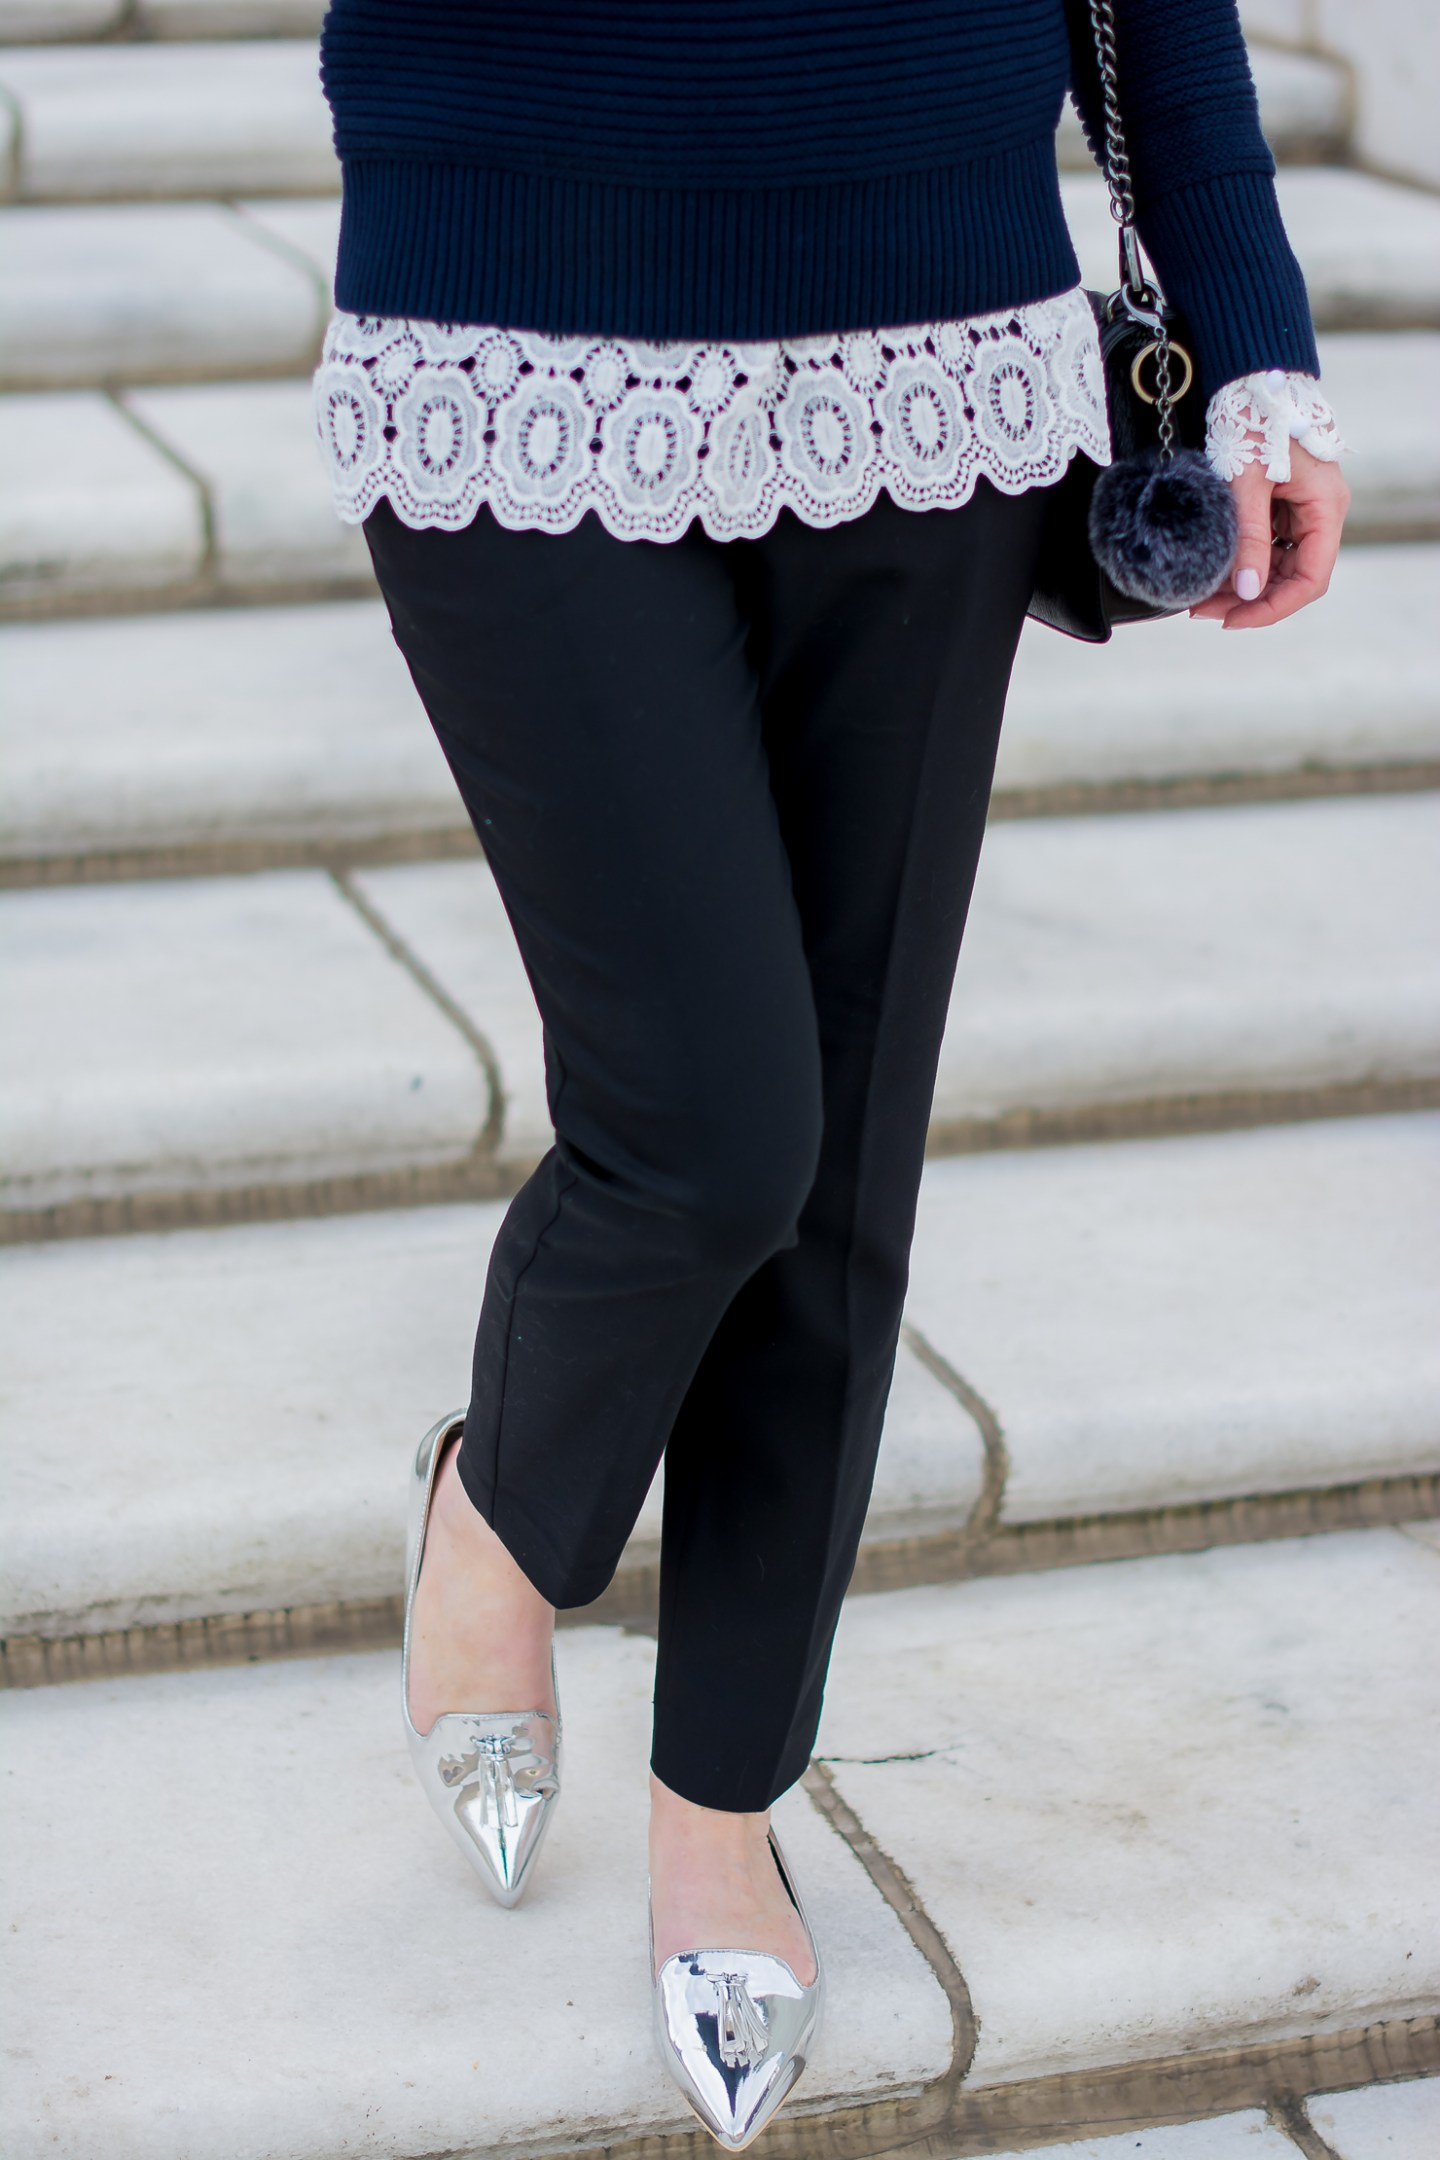 banana-republic-ruffle-shoulder-sweater-shein-lace-top-black-express-ankle-pants-asos-silver-tassel-loafers-12